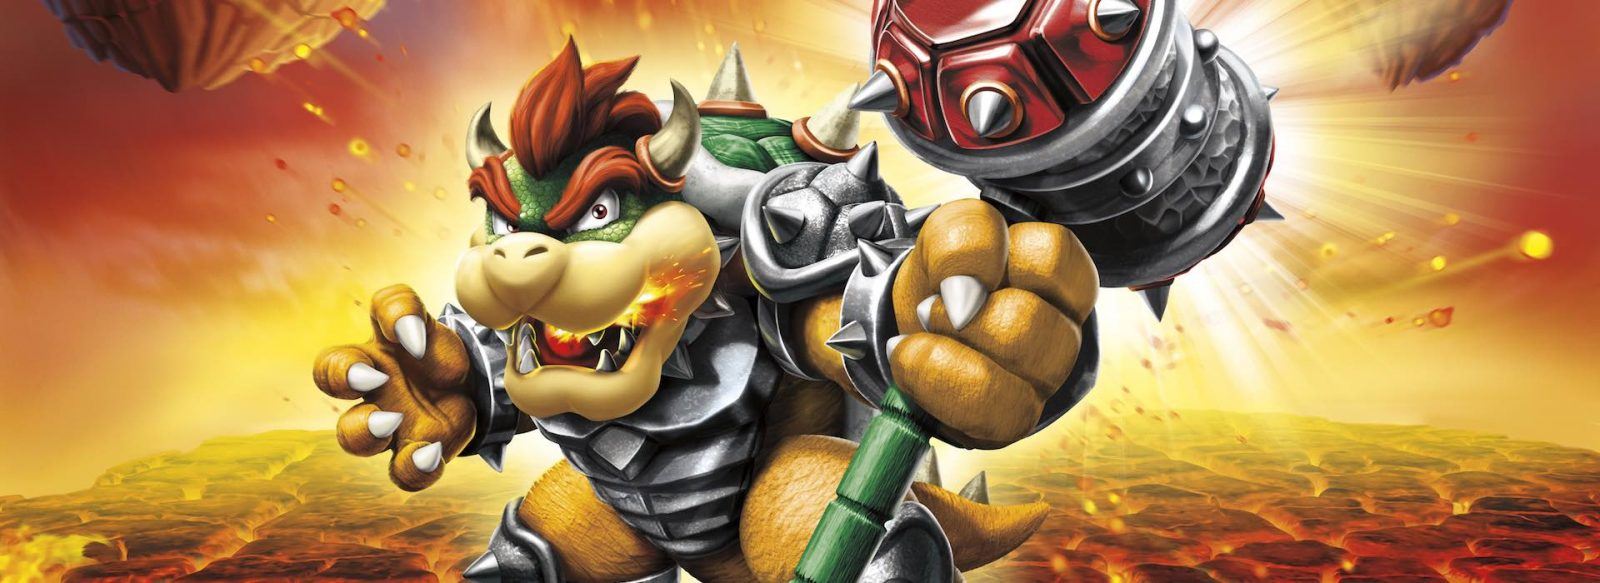 hammer-slam-bowser